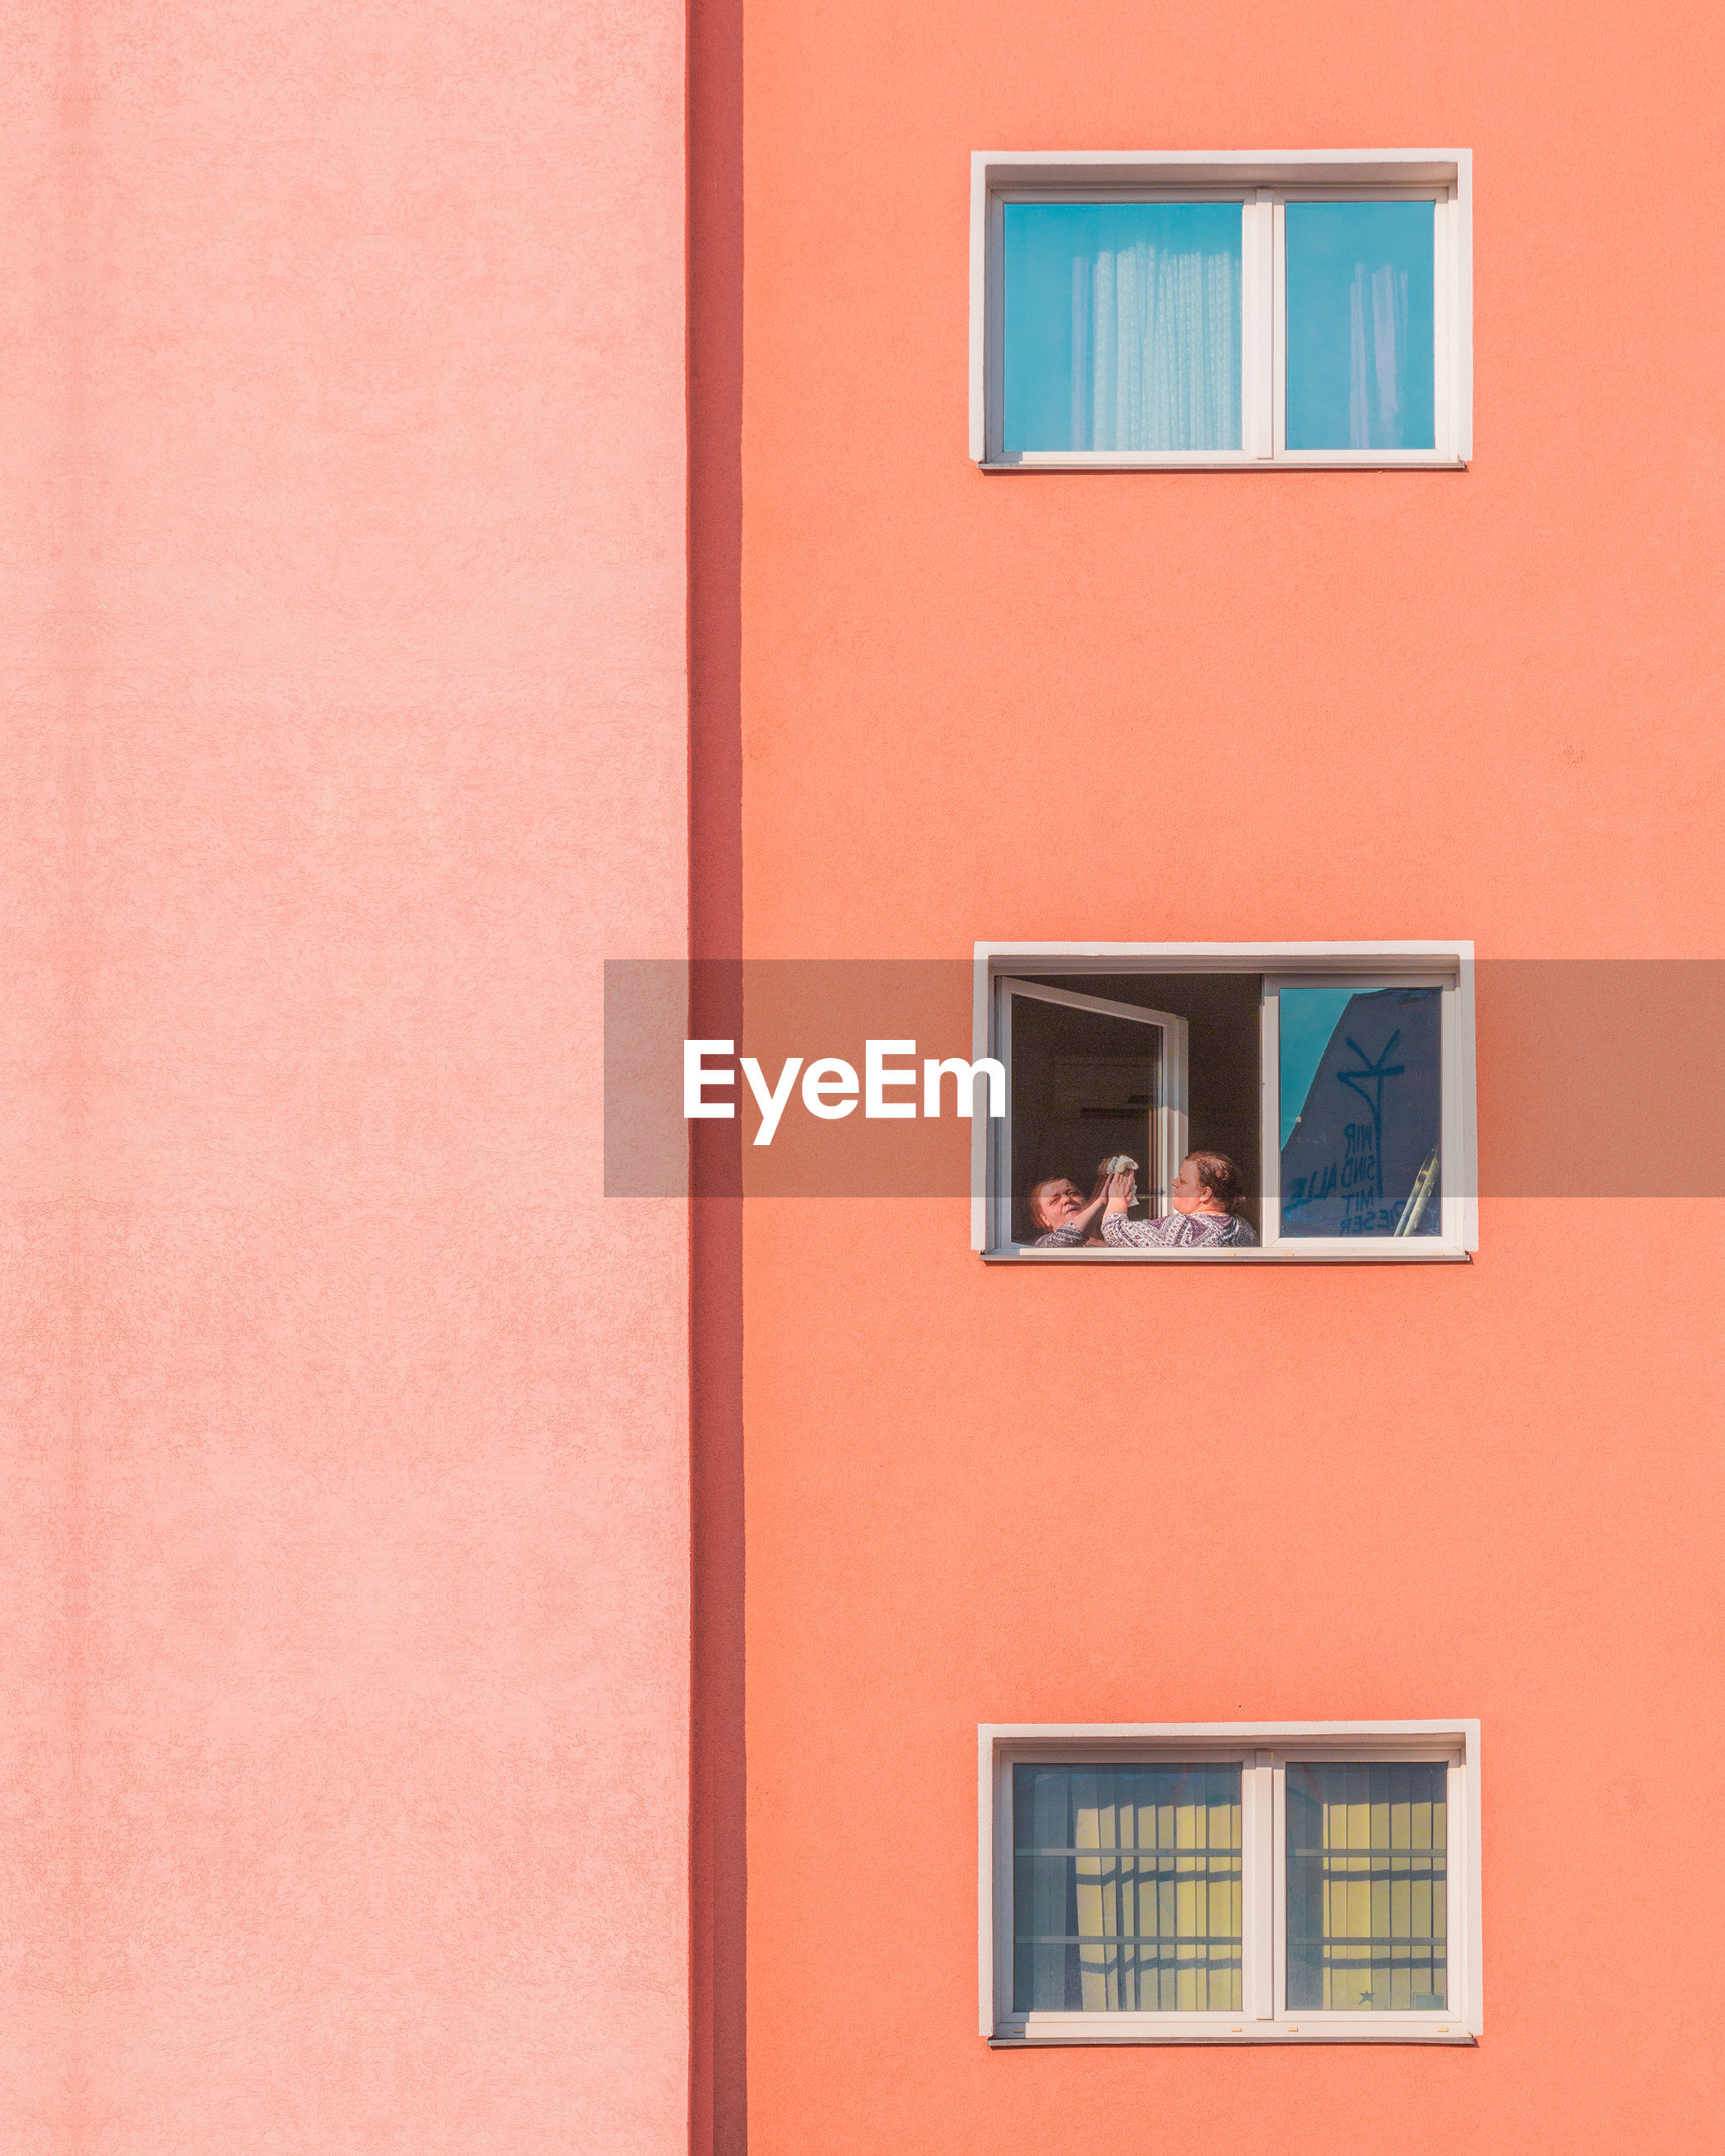 window, built structure, architecture, building exterior, wall - building feature, building, no people, day, full frame, outdoors, house, backgrounds, red, glass - material, orange color, copy space, low angle view, reflection, pink color, window frame